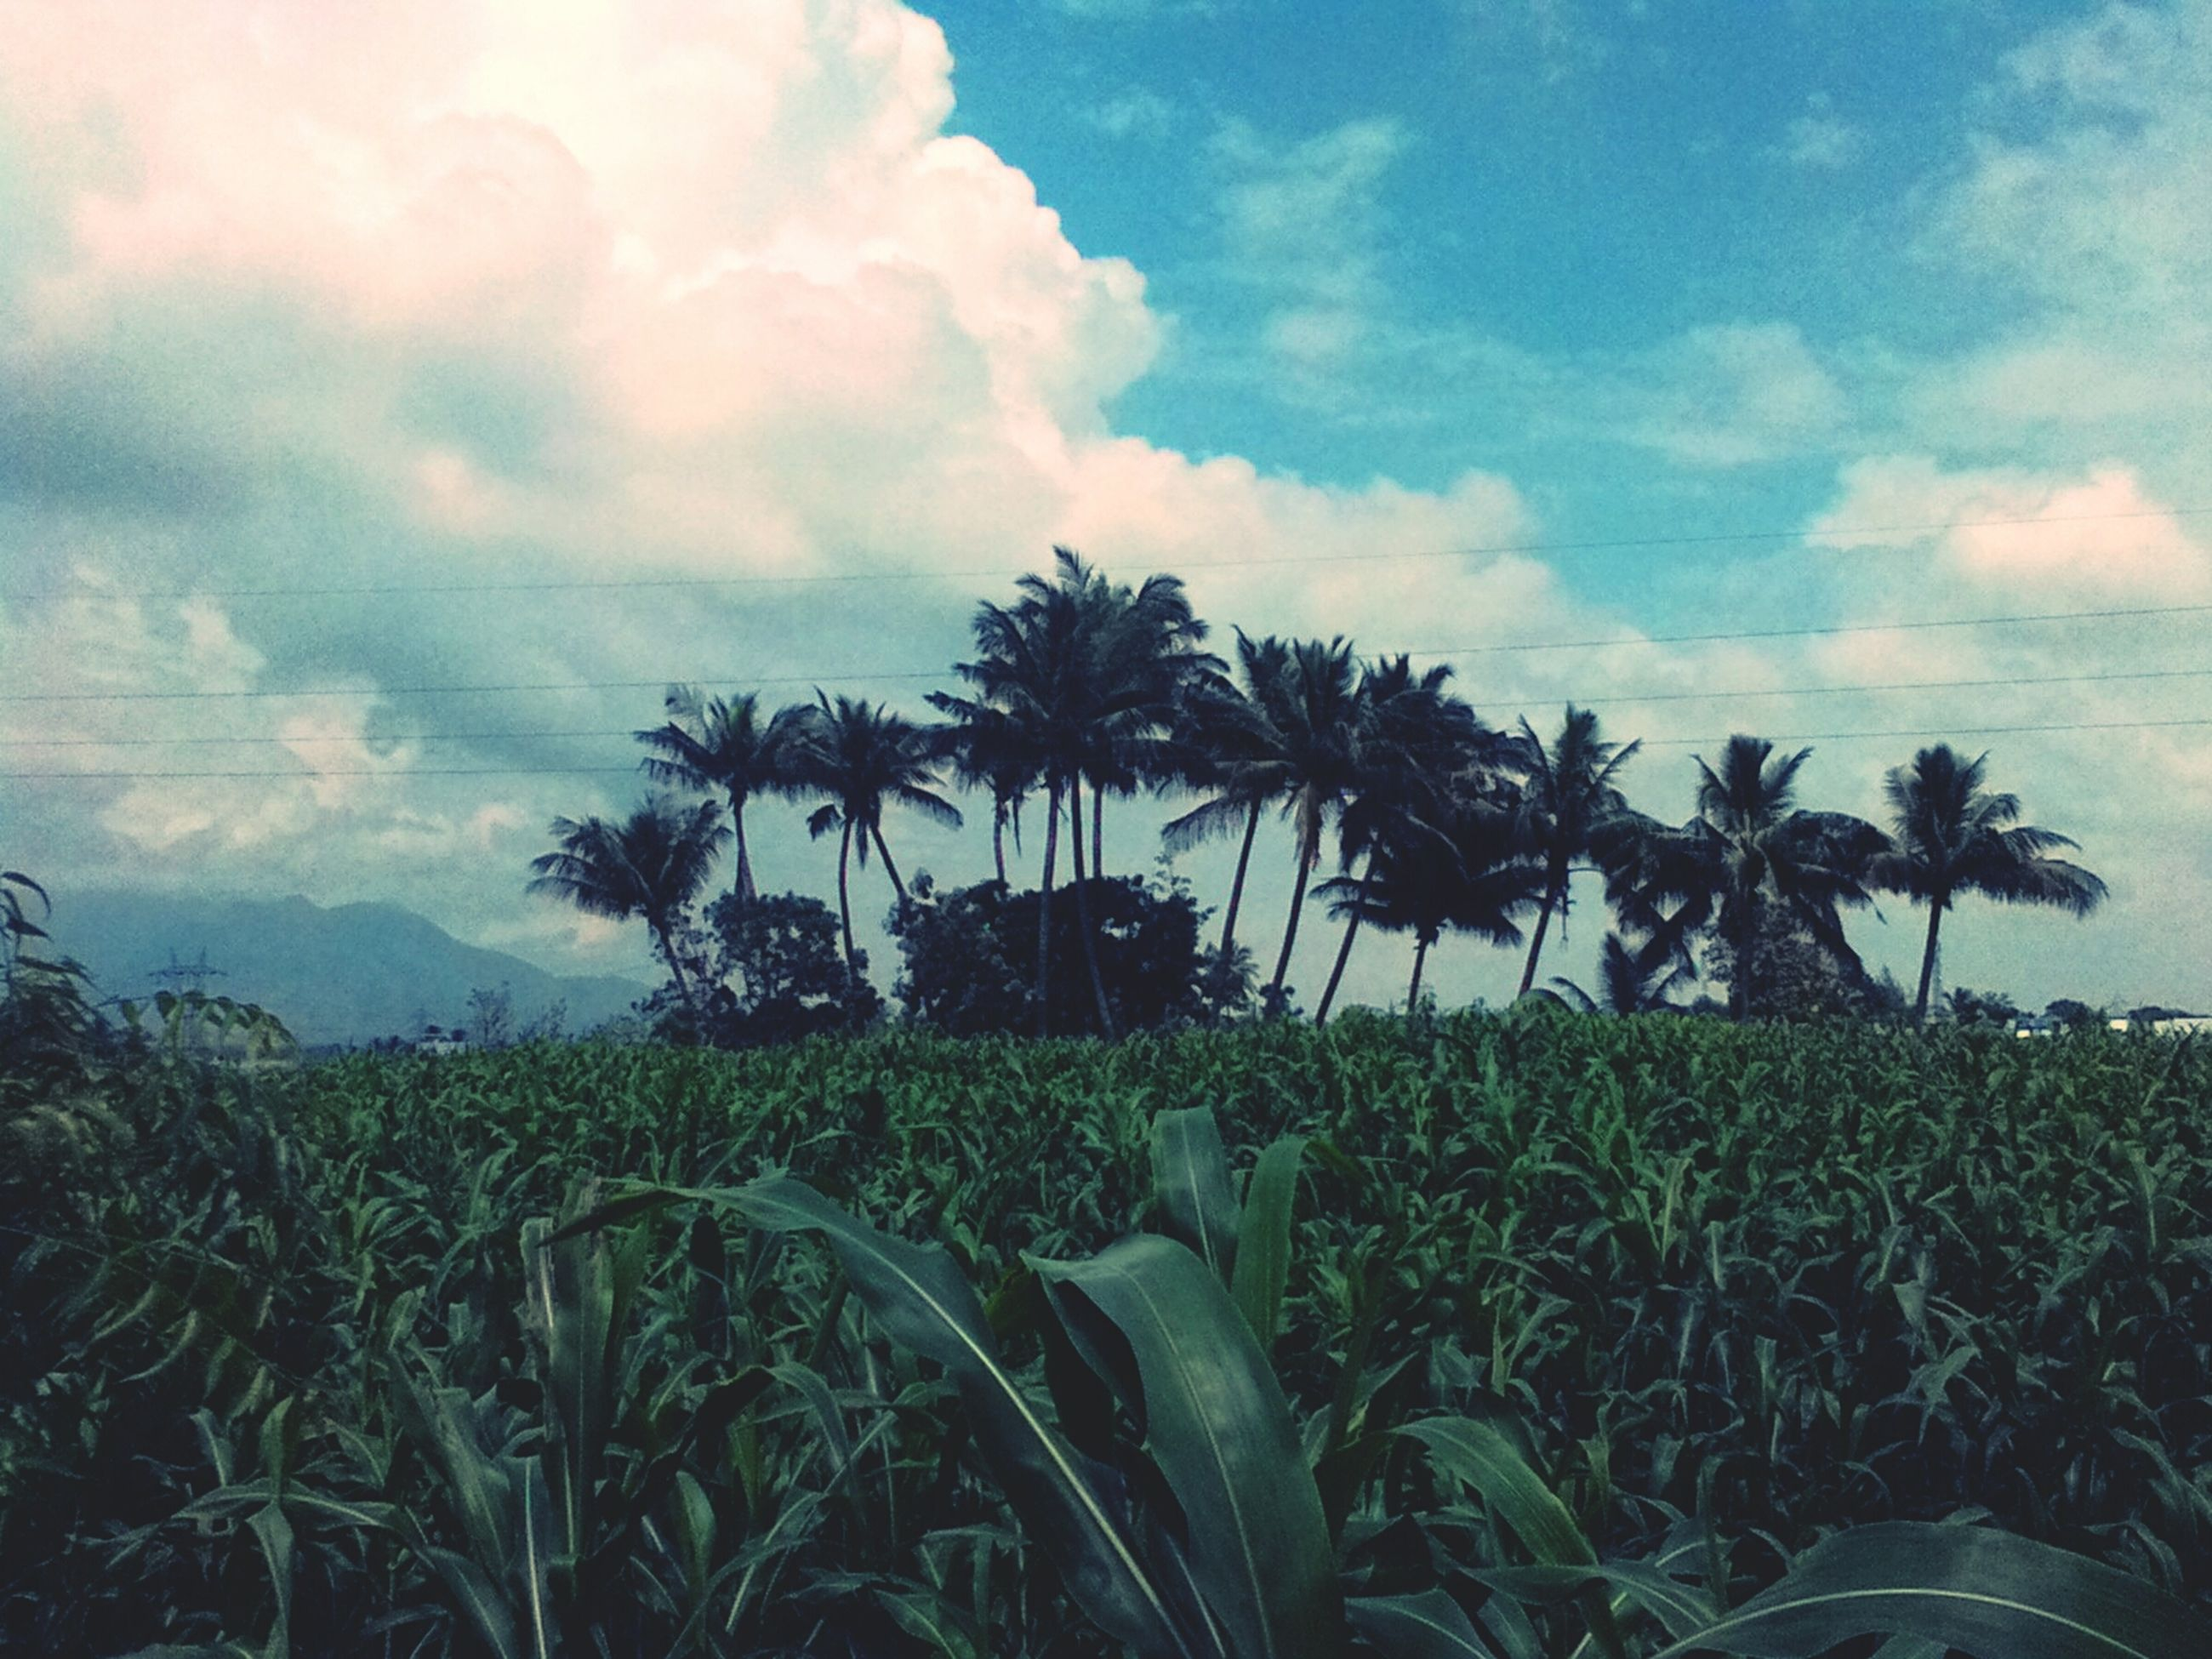 sky, palm tree, cloud - sky, growth, grass, tranquility, field, tree, cloudy, cloud, nature, tranquil scene, green color, beauty in nature, plant, scenics, landscape, no people, outdoors, growing